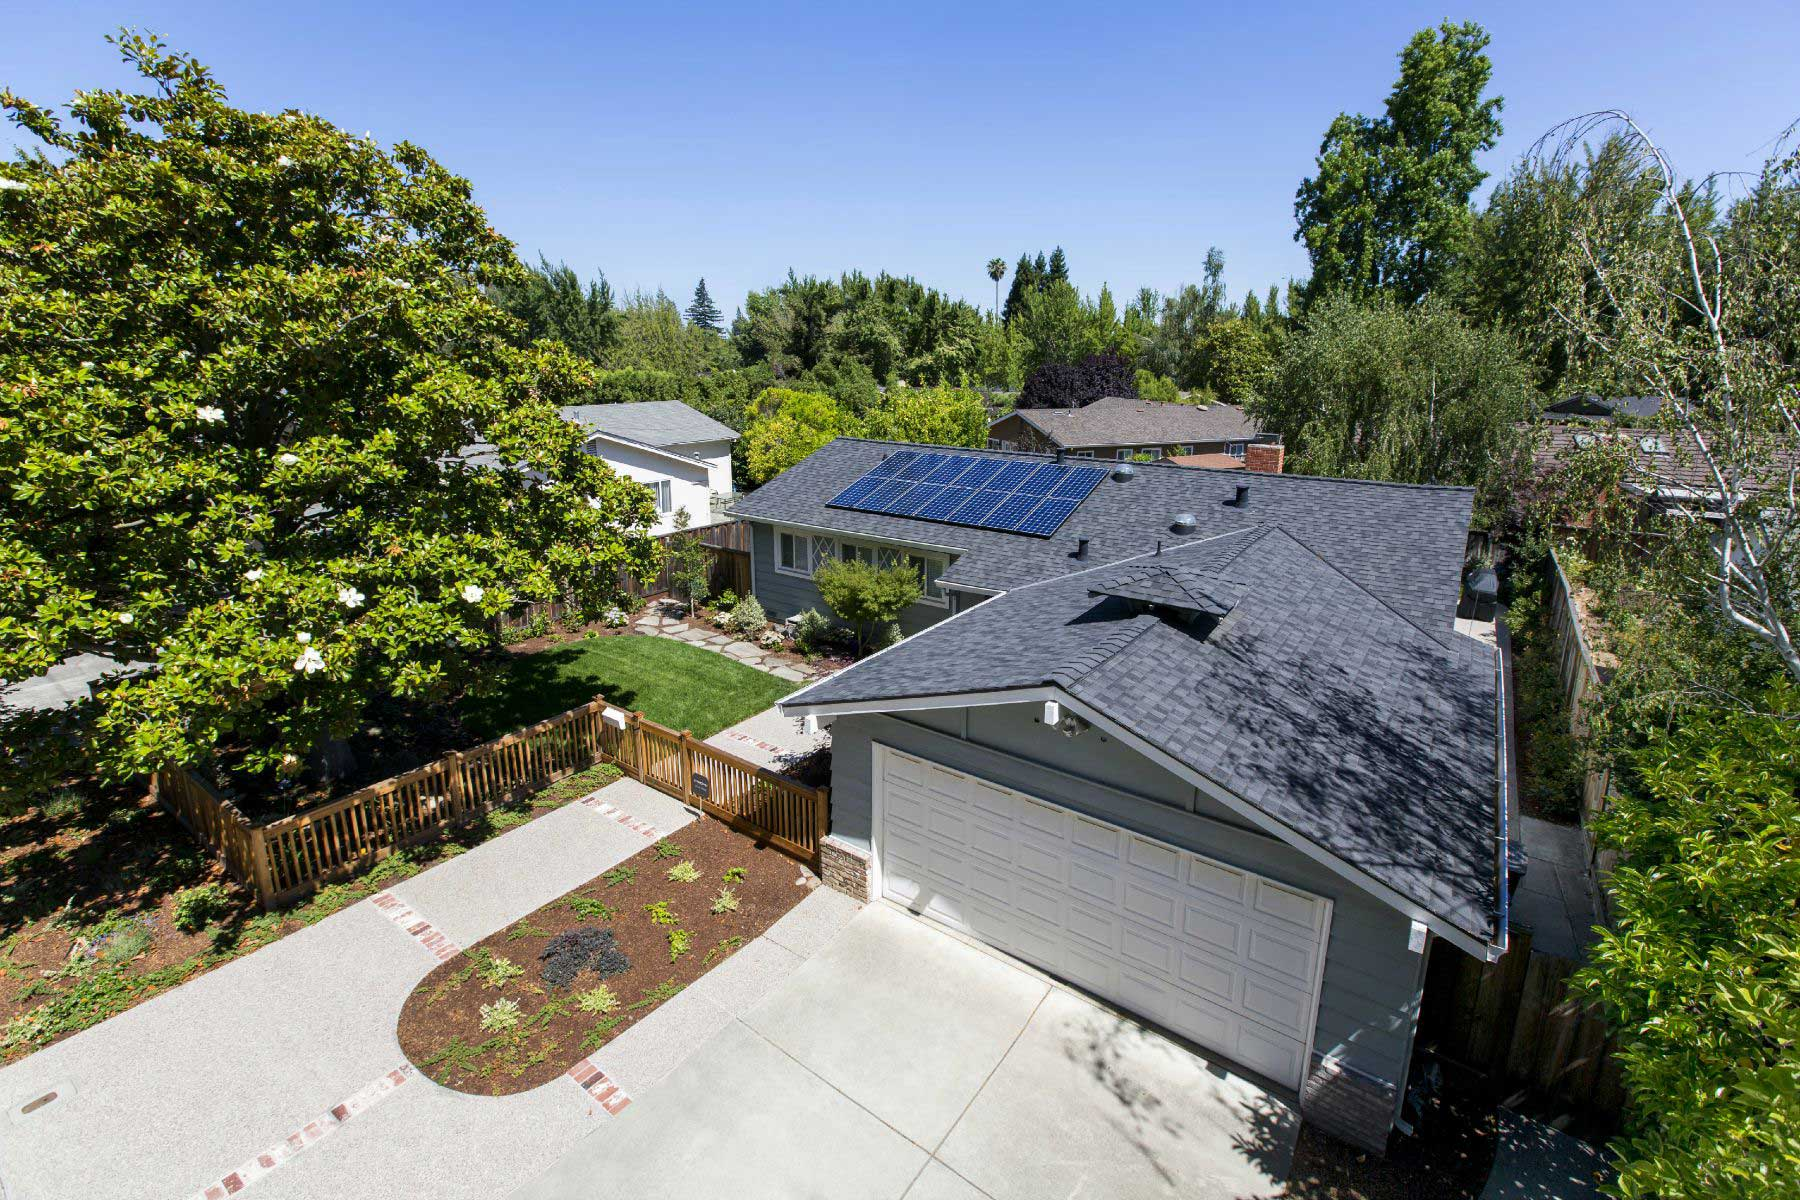 How Much Do SunPower Solar Panels Cost?